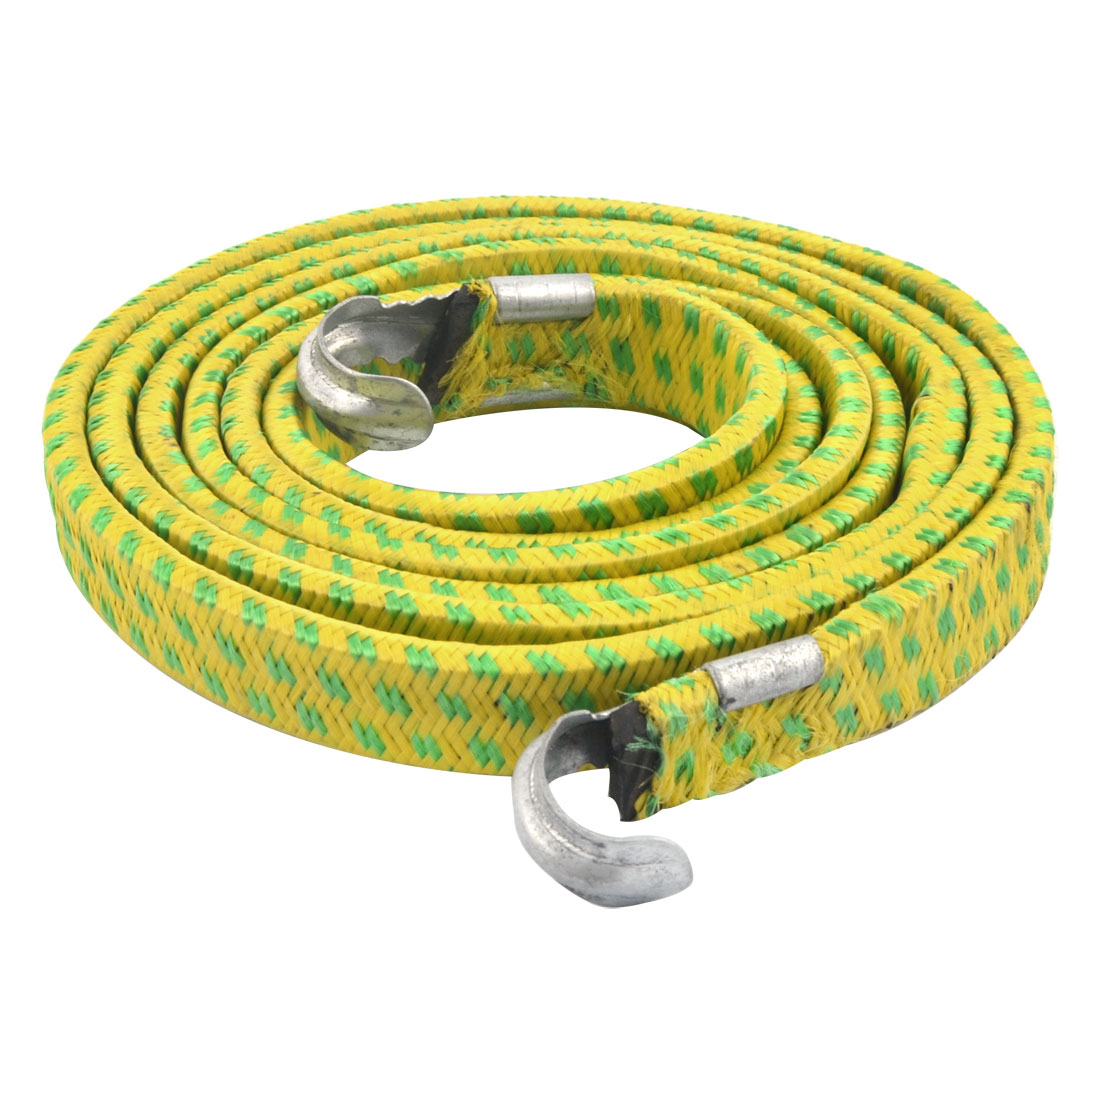 Bike Bicycle Luggage Metal Hook Clasp Stretchy Braid Rope Cord Yellow Green 1.9M